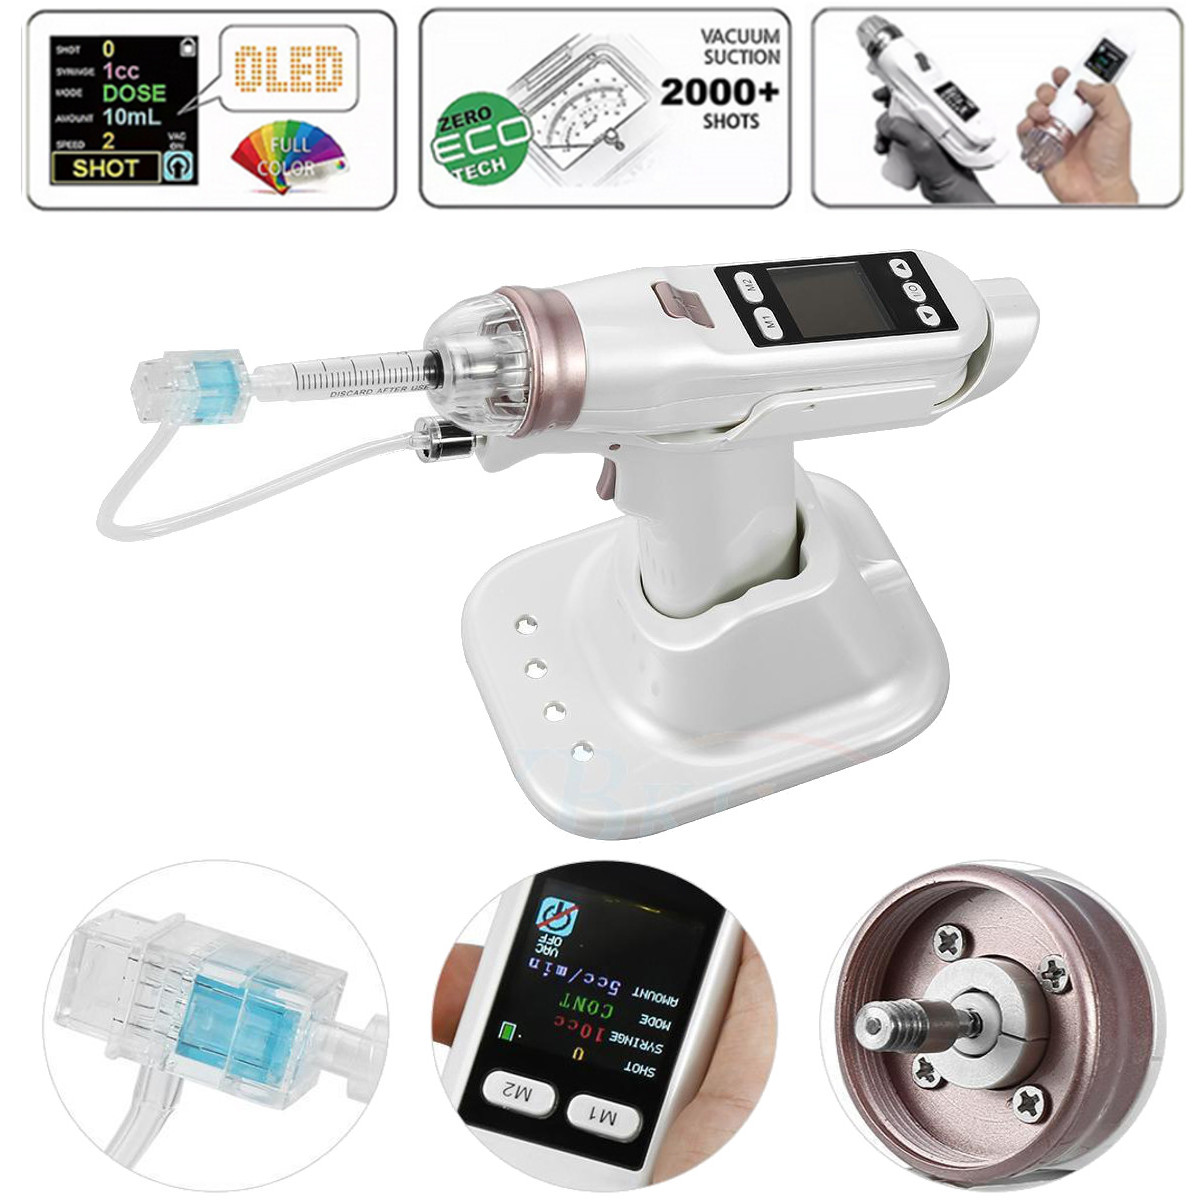 Hydro Vacuum Injection Mesotherapy Meso Gun Vital Acid Injection Wrinkle Removal Facial Skin Care